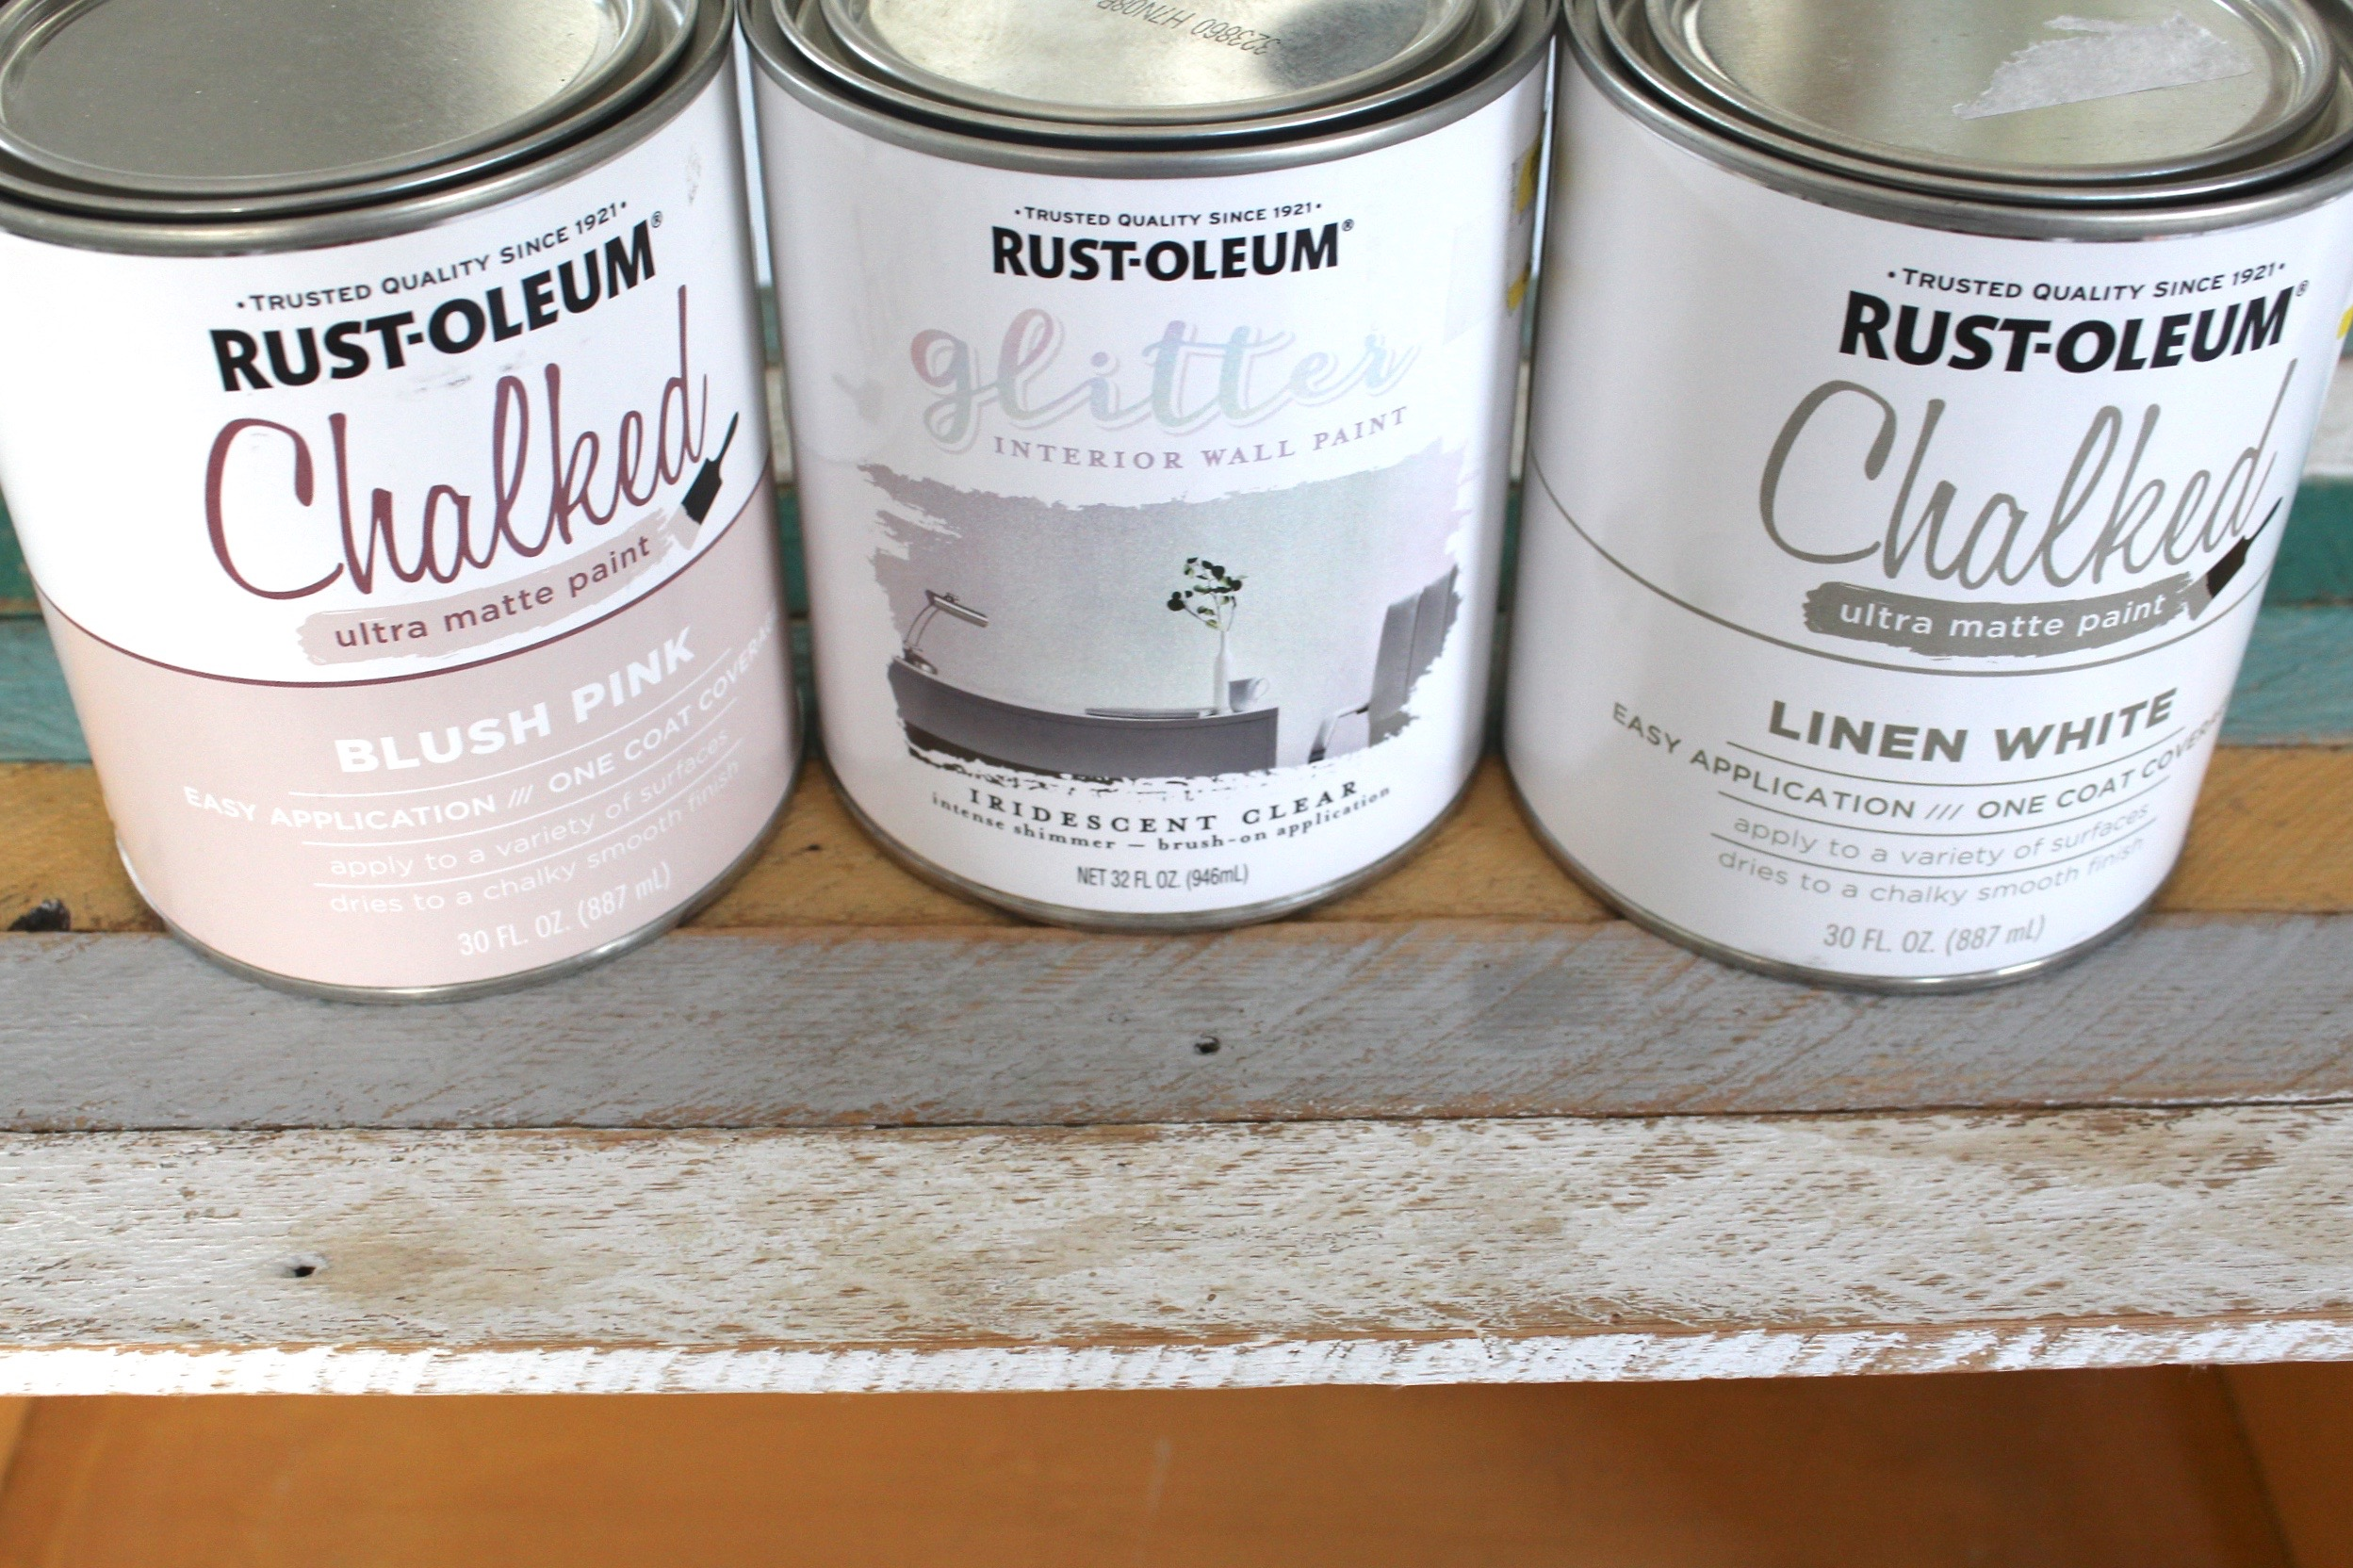 Rust-oleum chalk and glitter paints